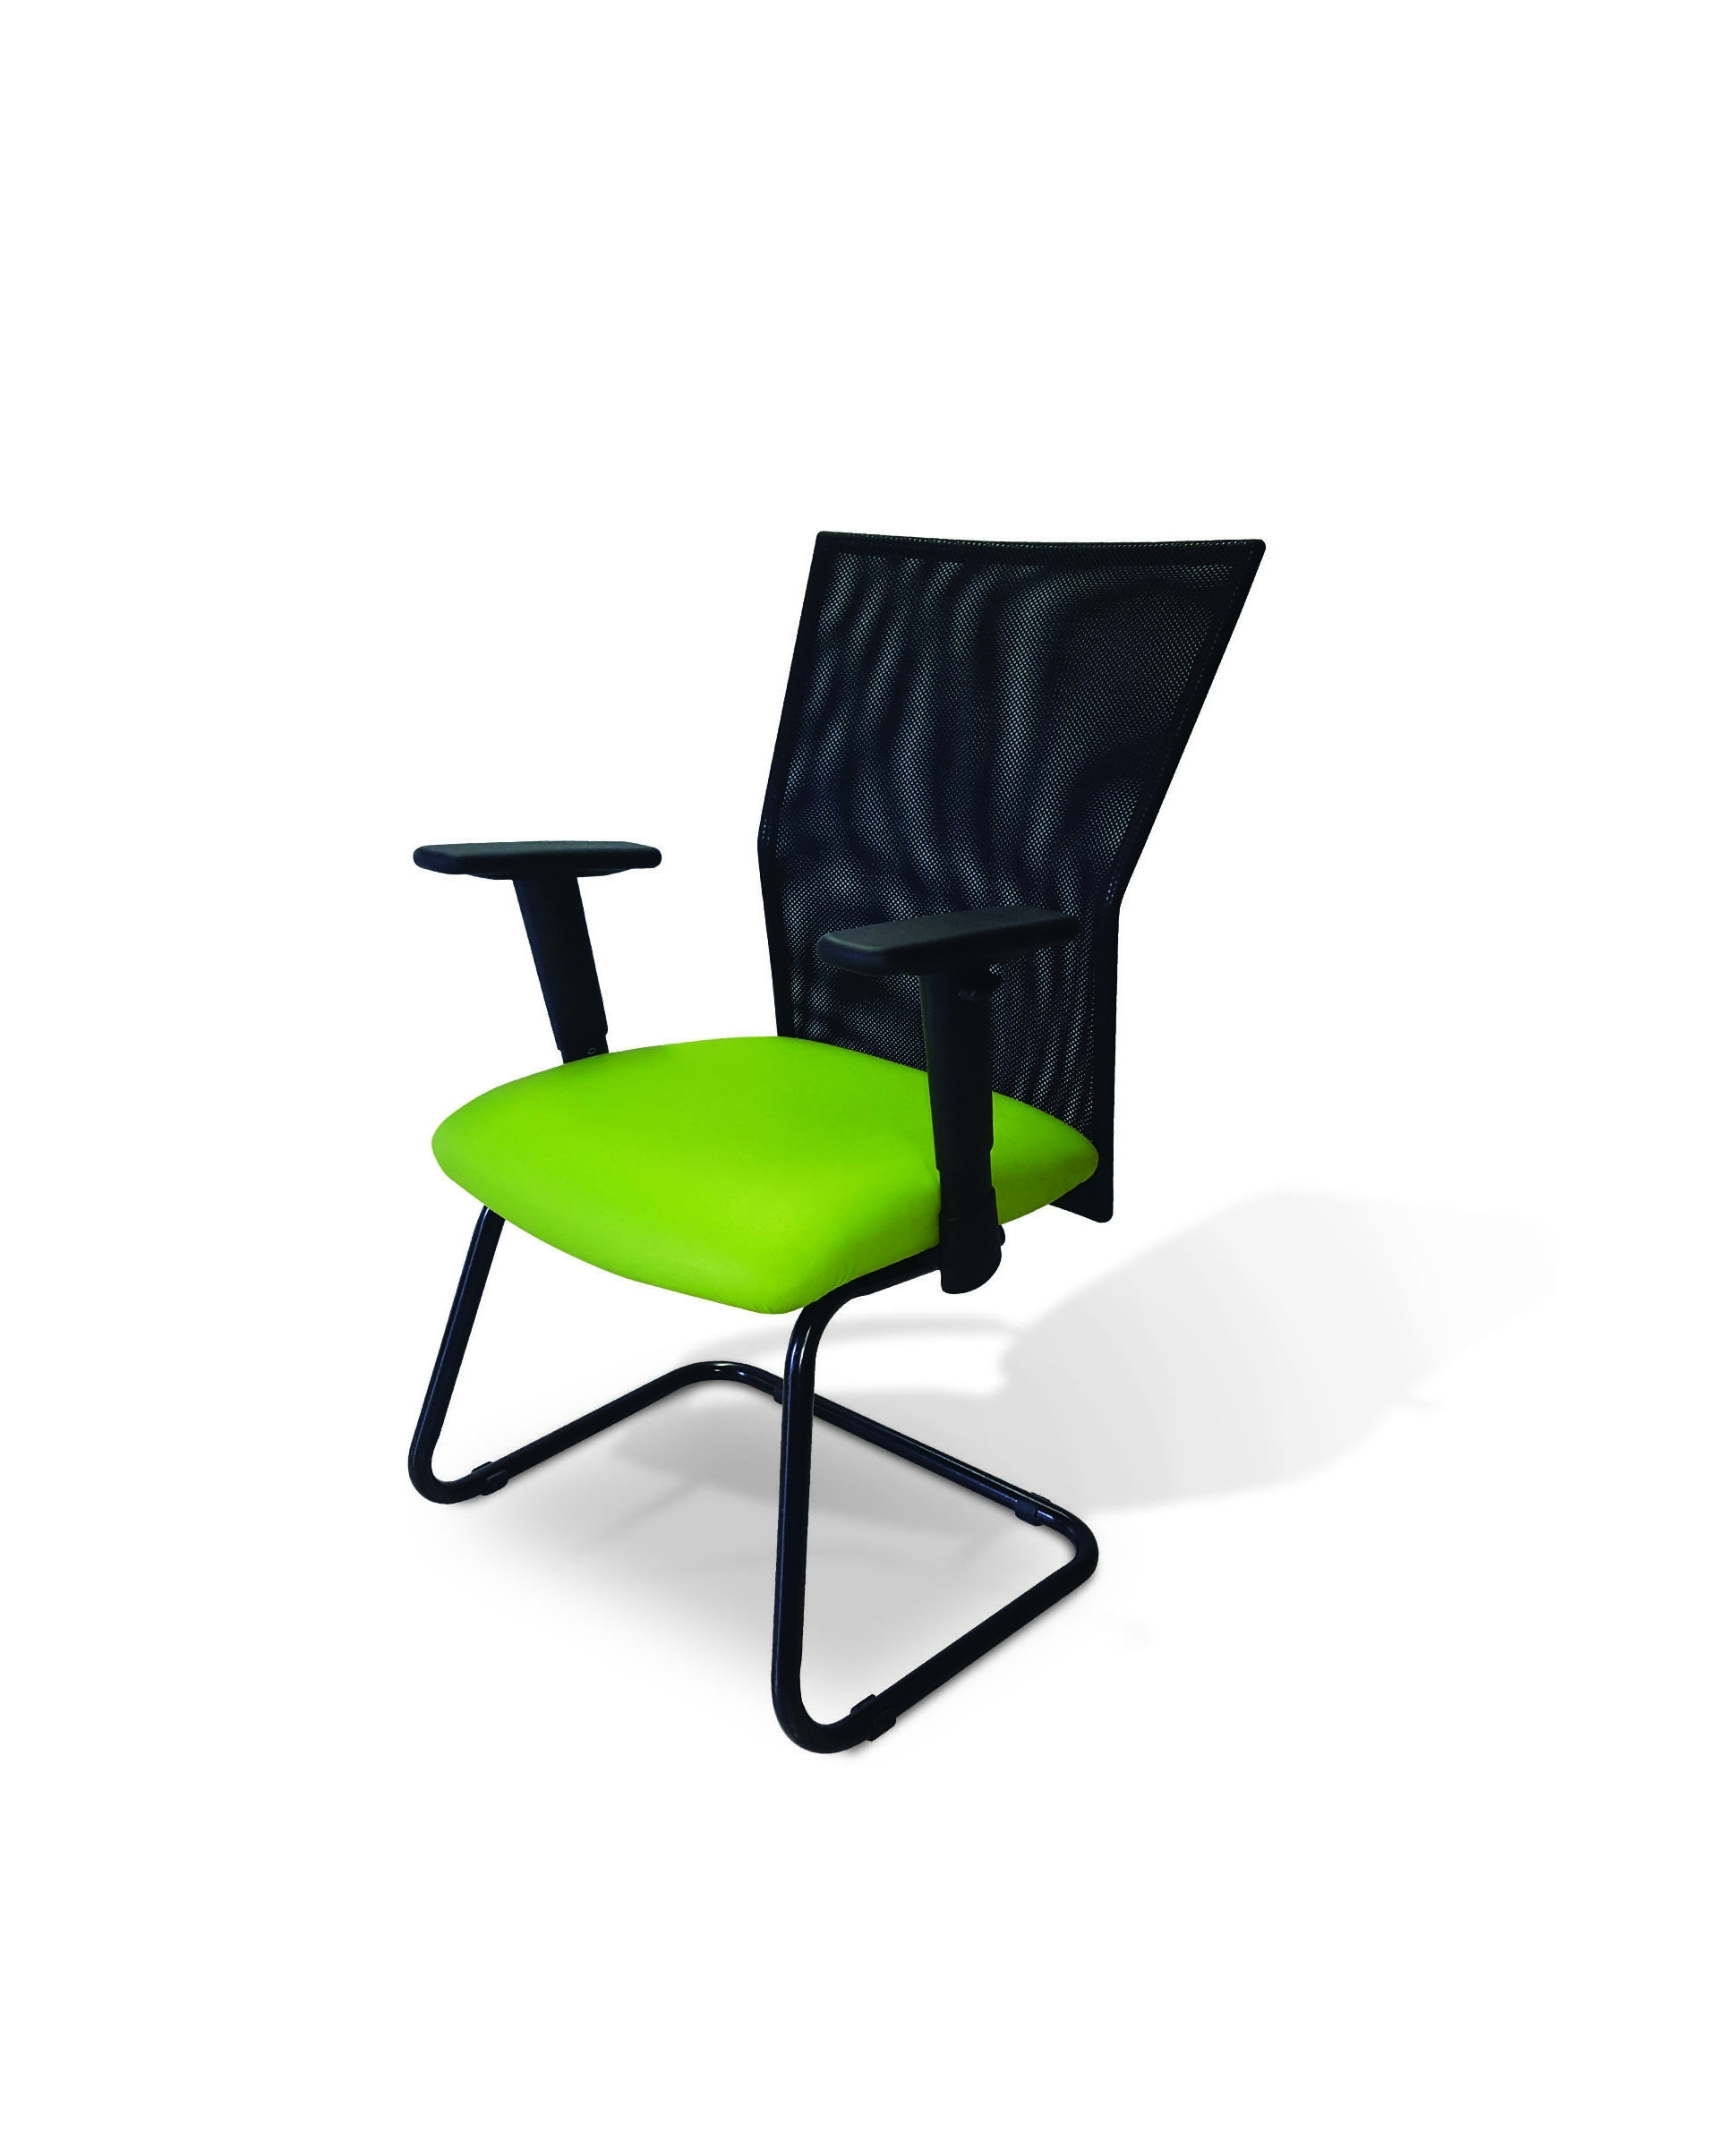 Widely Used Swift Mesh Visitor Chair For Sale In Johannesburg (View 20 of 20)